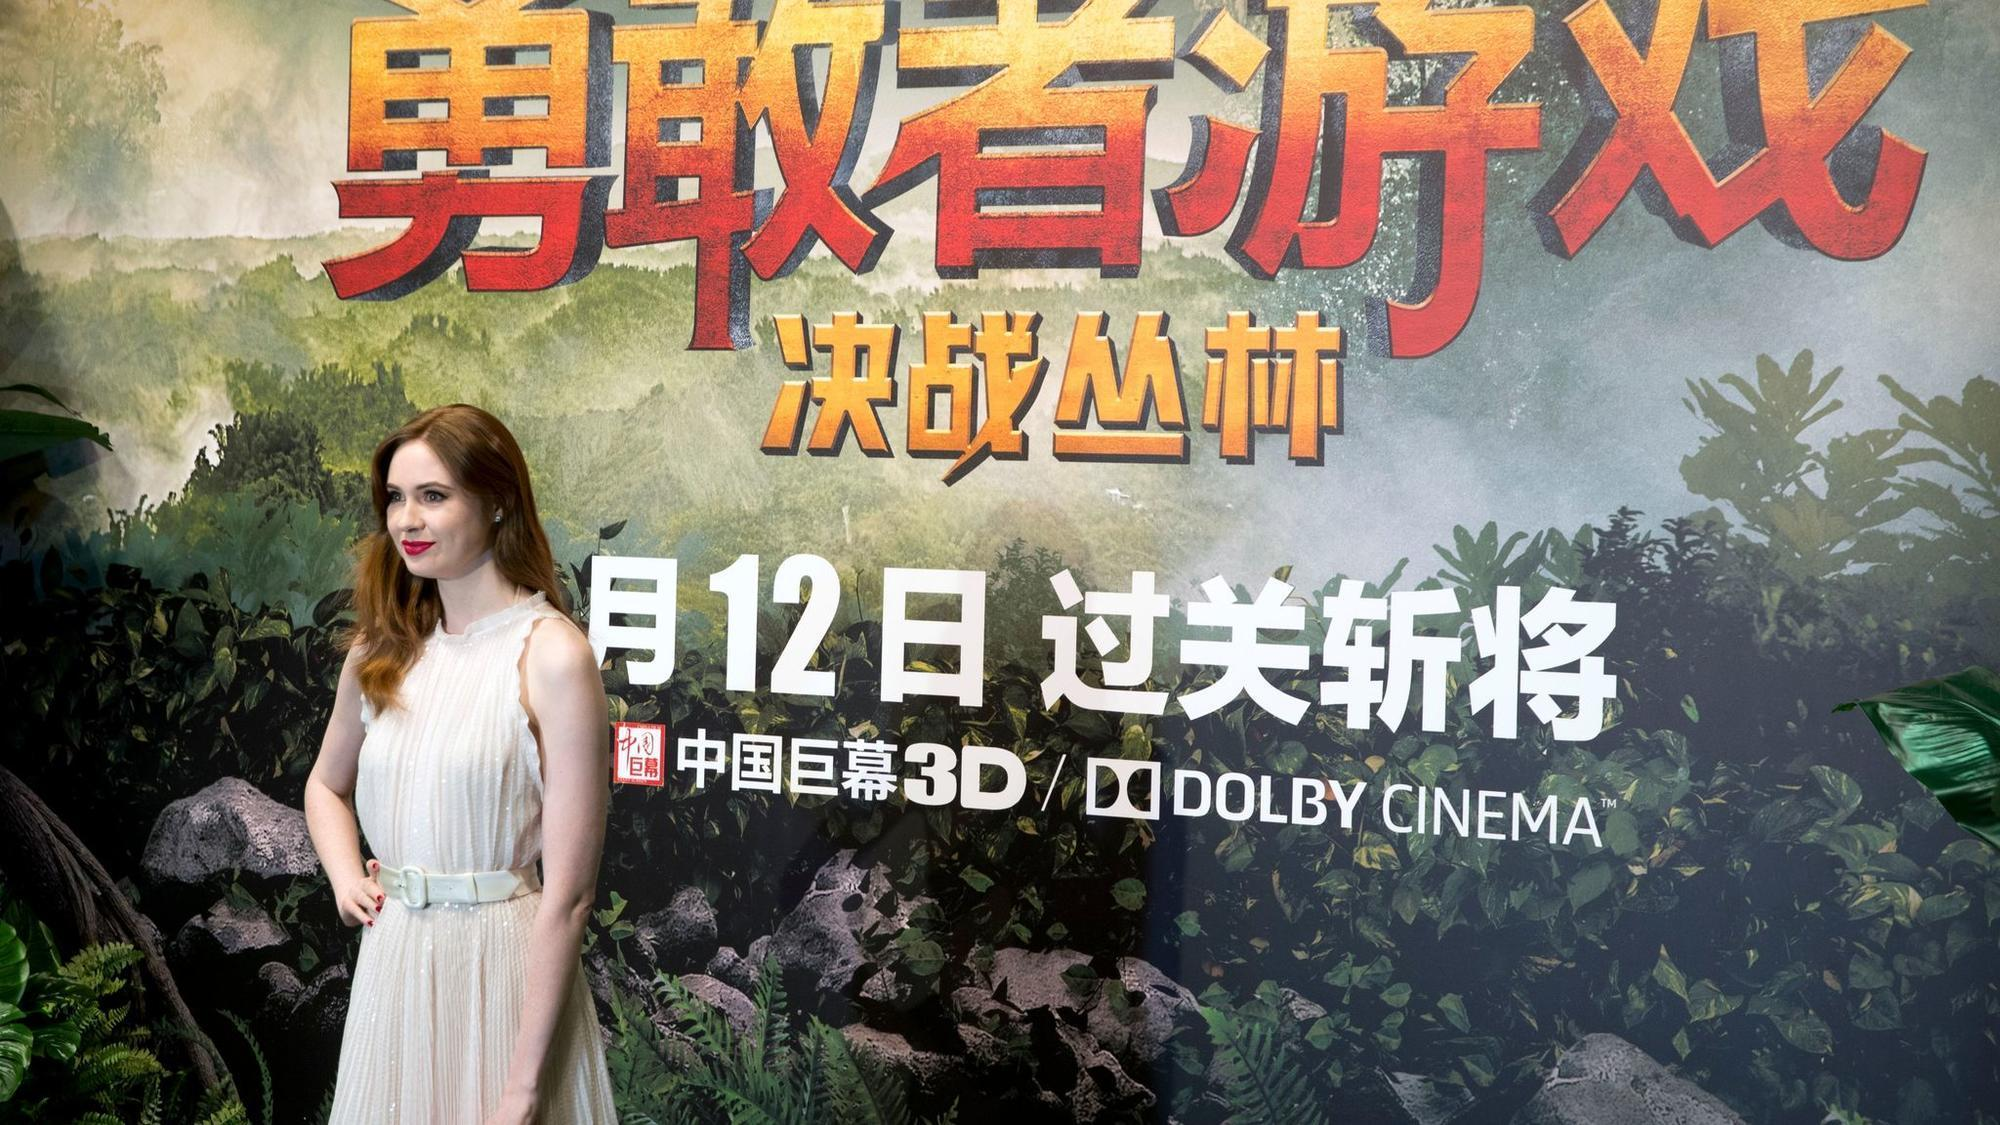 Romantic comedy 'ExFile3' and 'Jumanji' top China's box office